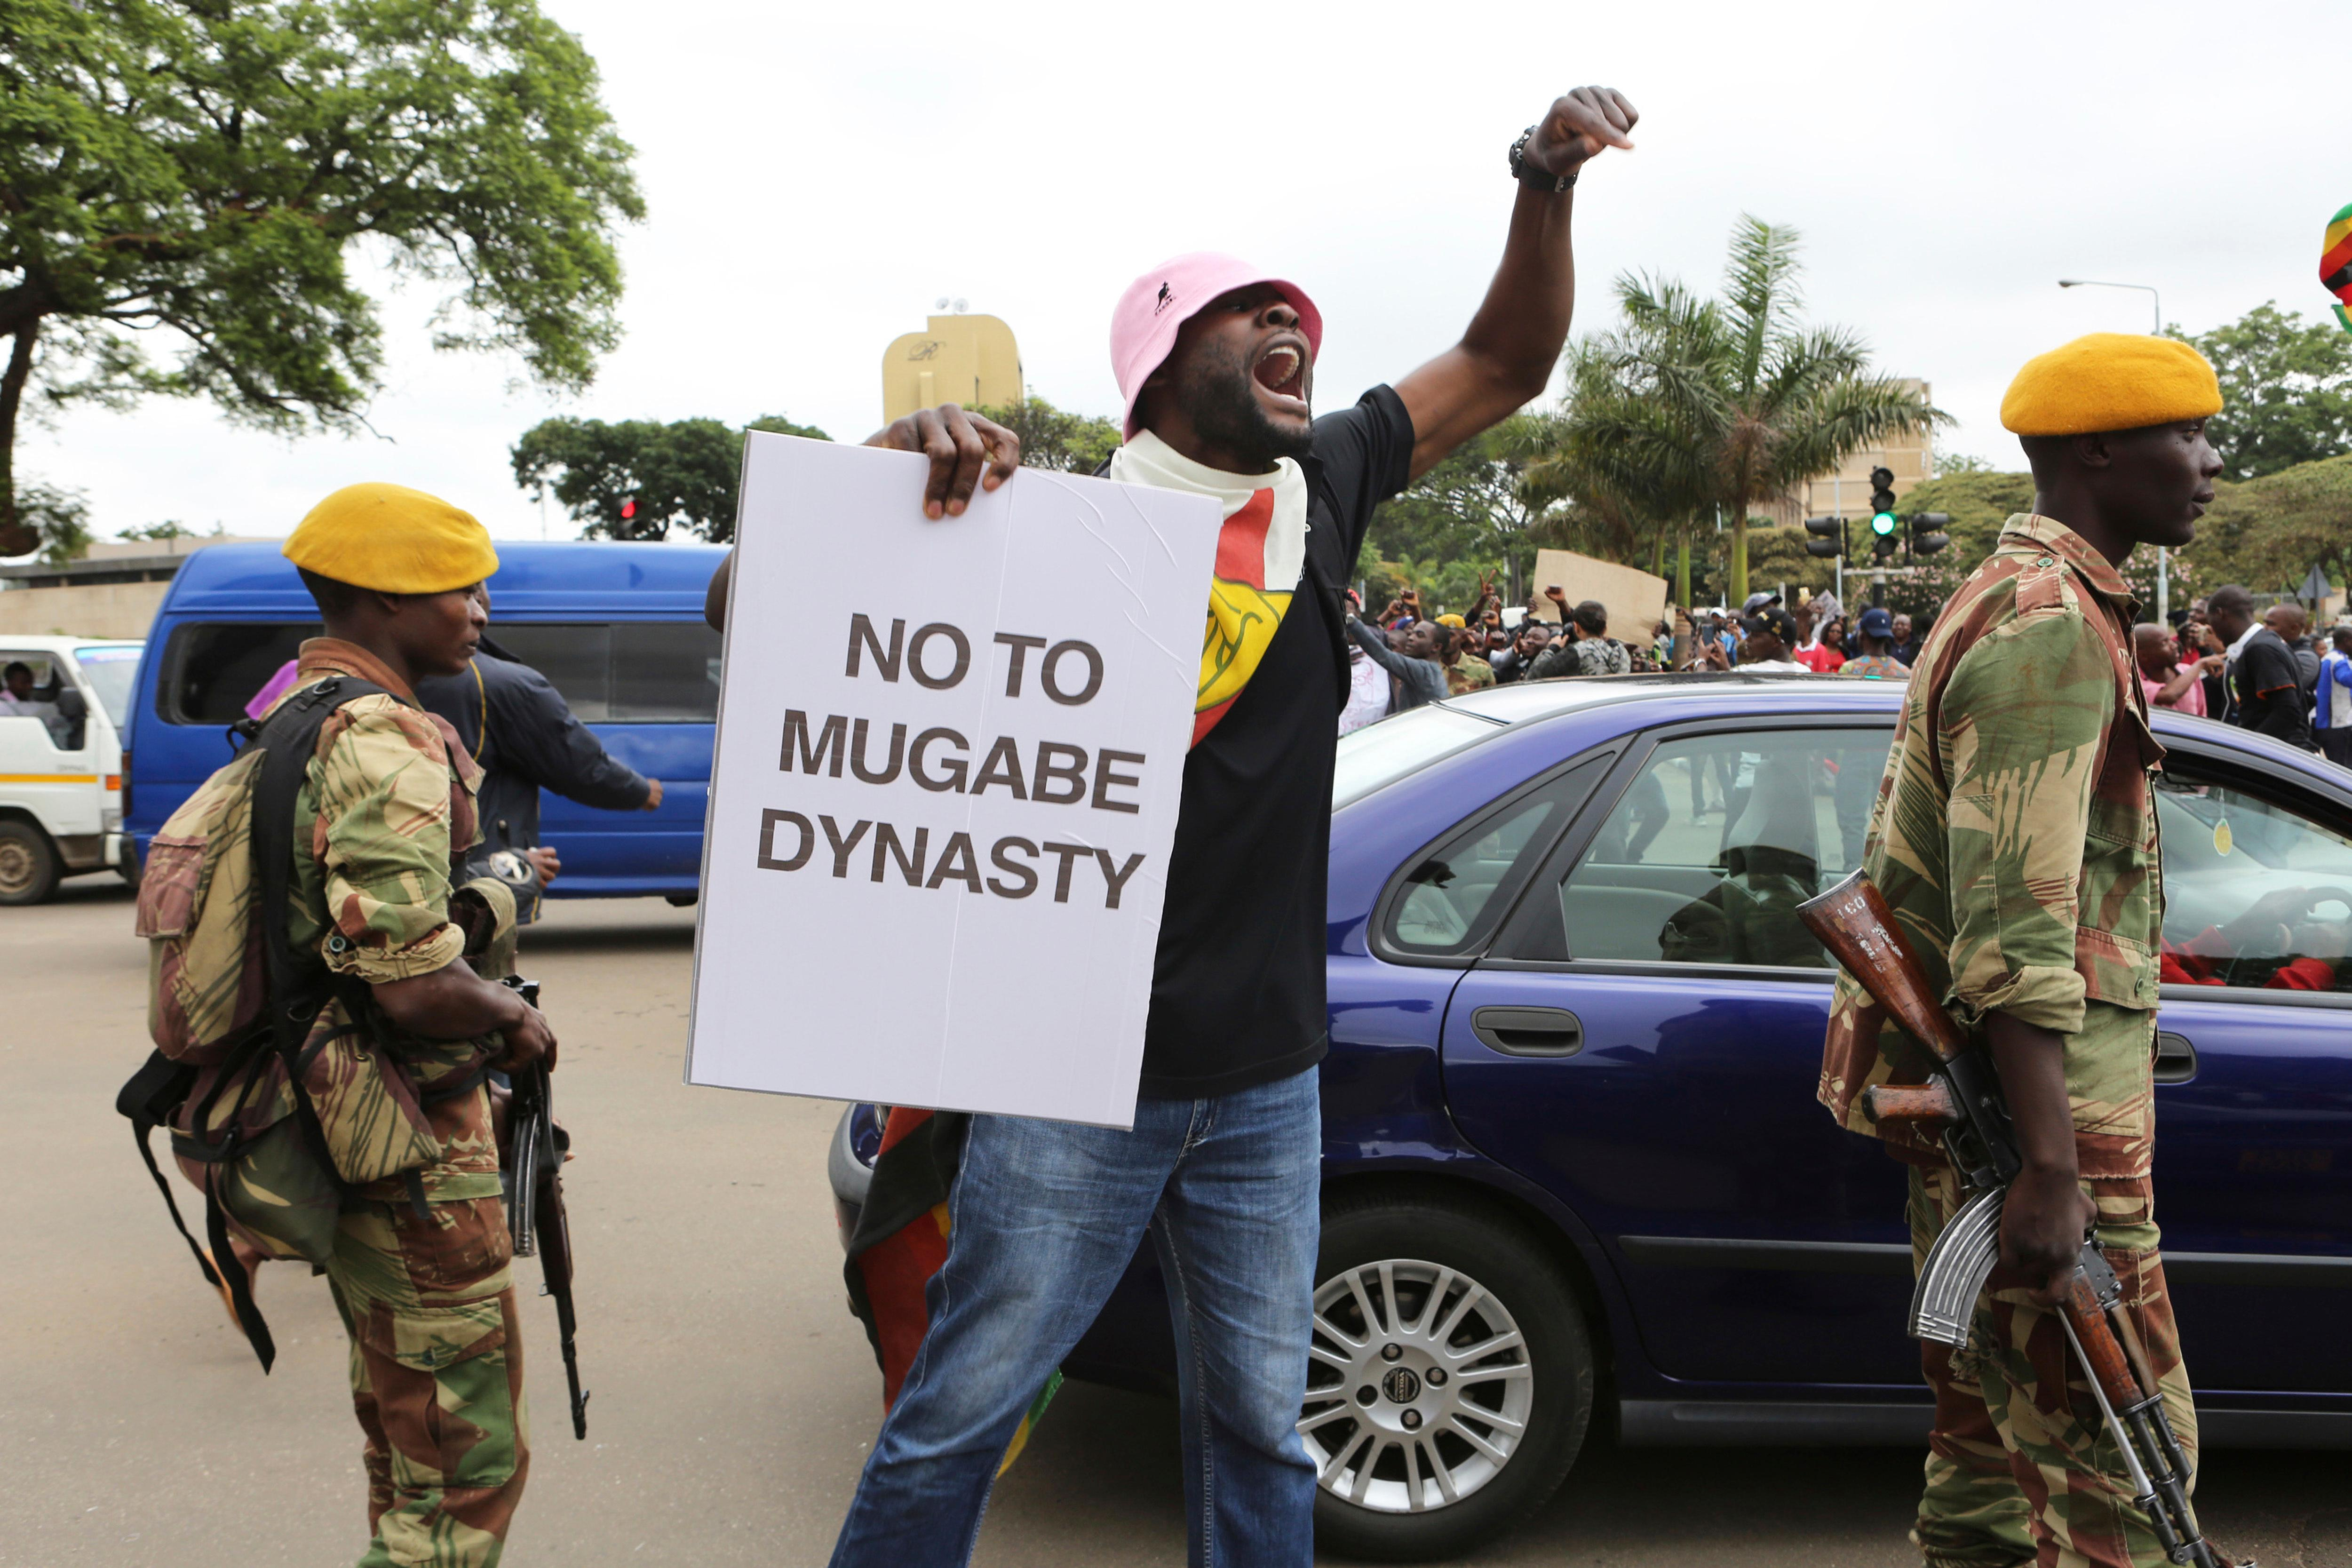 A marcher makes a point as euphoric crowds march on the streets Saturday, Nov. 18, 2017, in Harare, Zimbabwe, demanding the departure of President Robert Mugabe. Zimbabweans giddy with joy raced through intersections, raising their arms in triumph. (AP Photo/Tsvangirayi Mukwazhi)